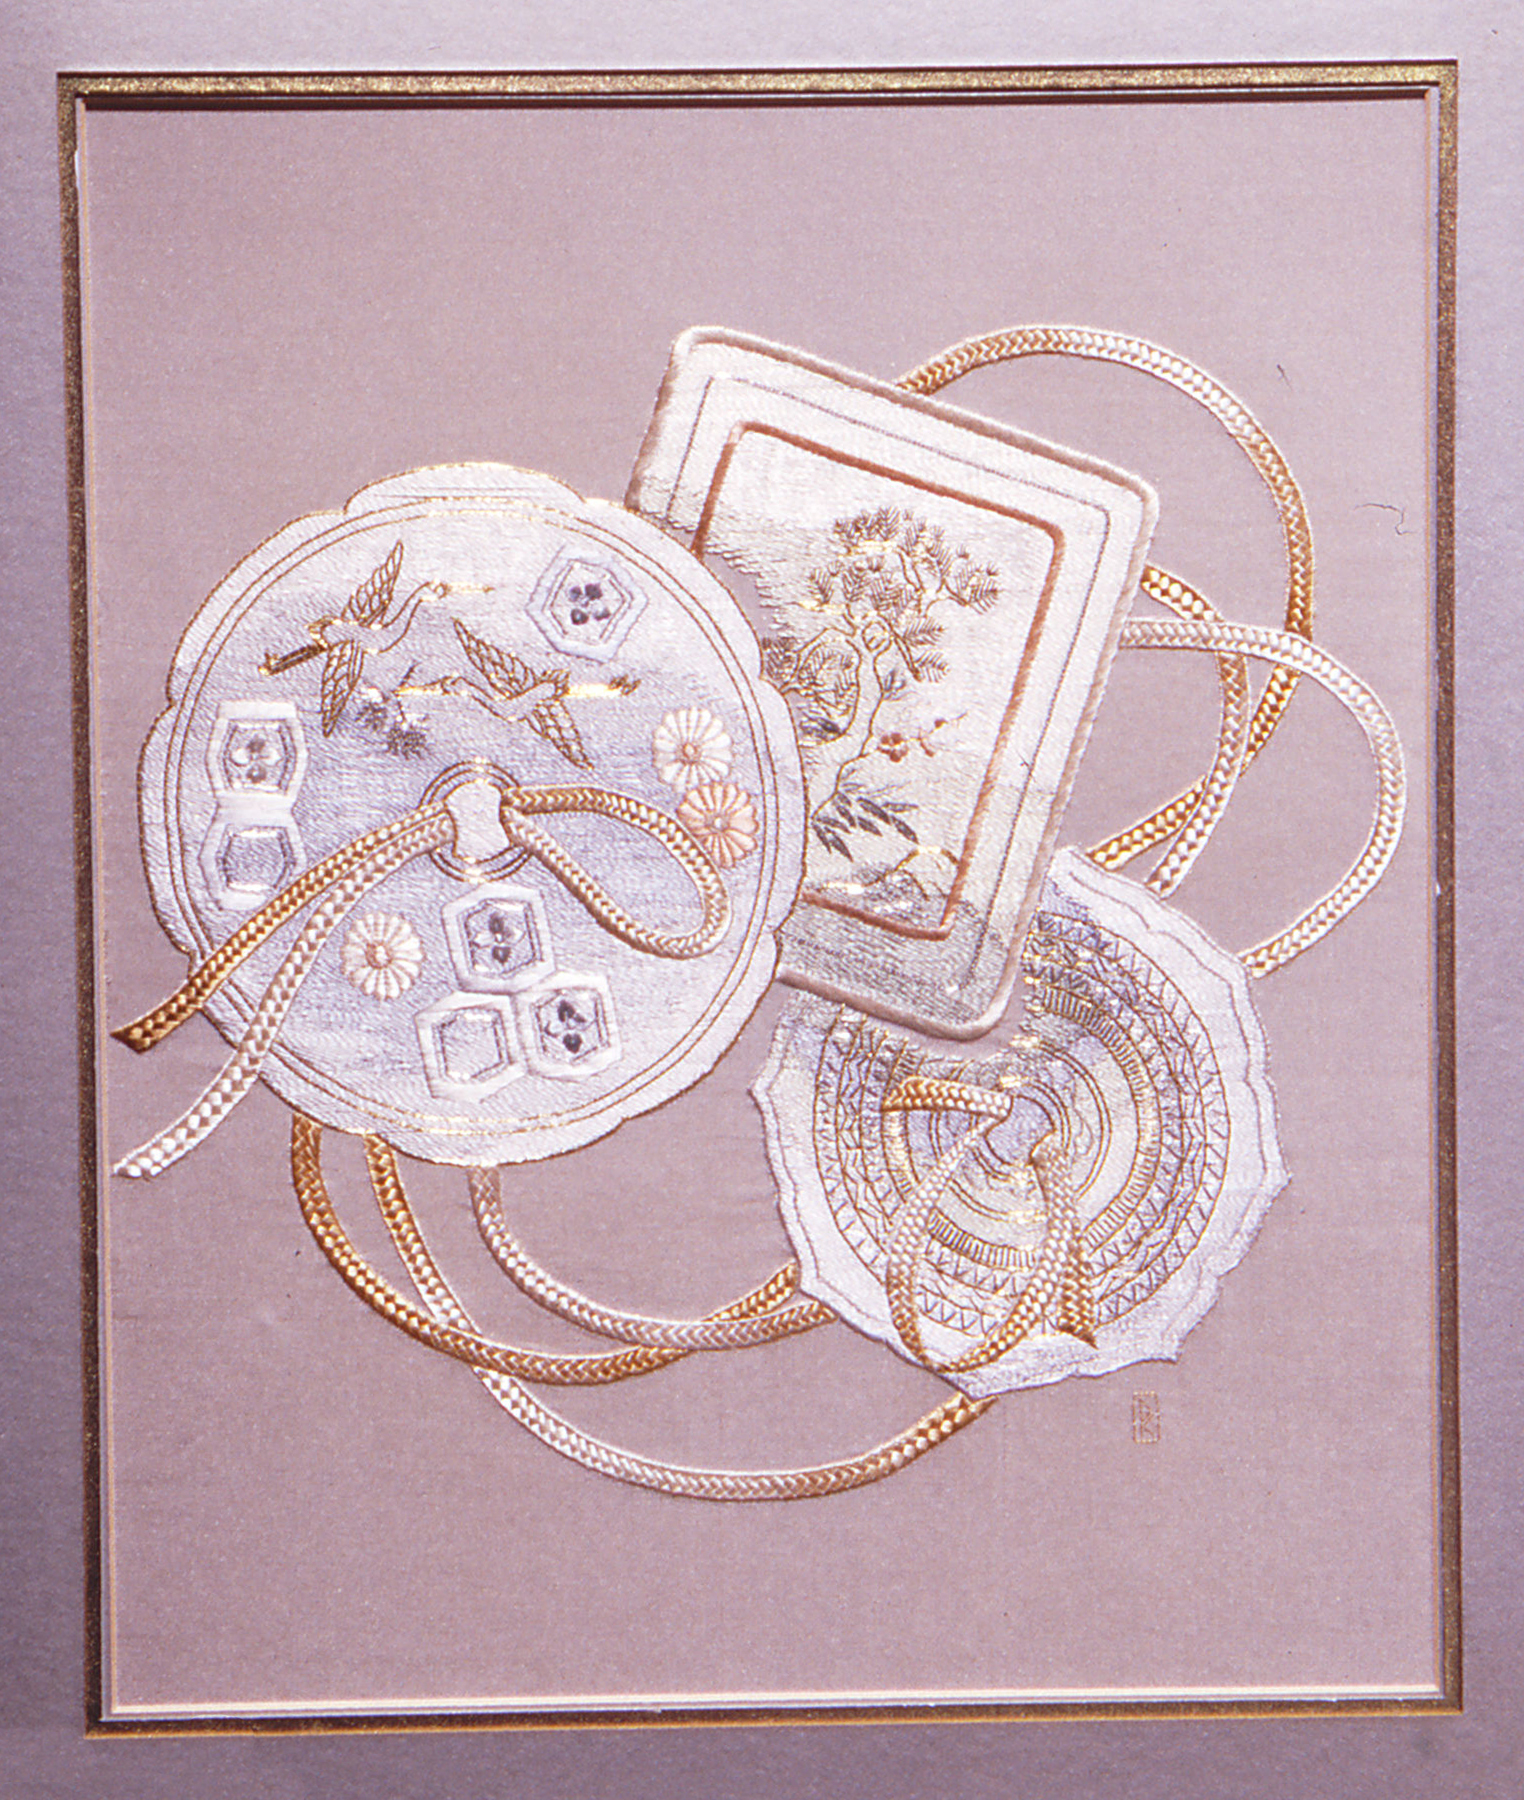 Reflective Japanese silk and metal embroidery with three mirrors connected by gold and silver braids